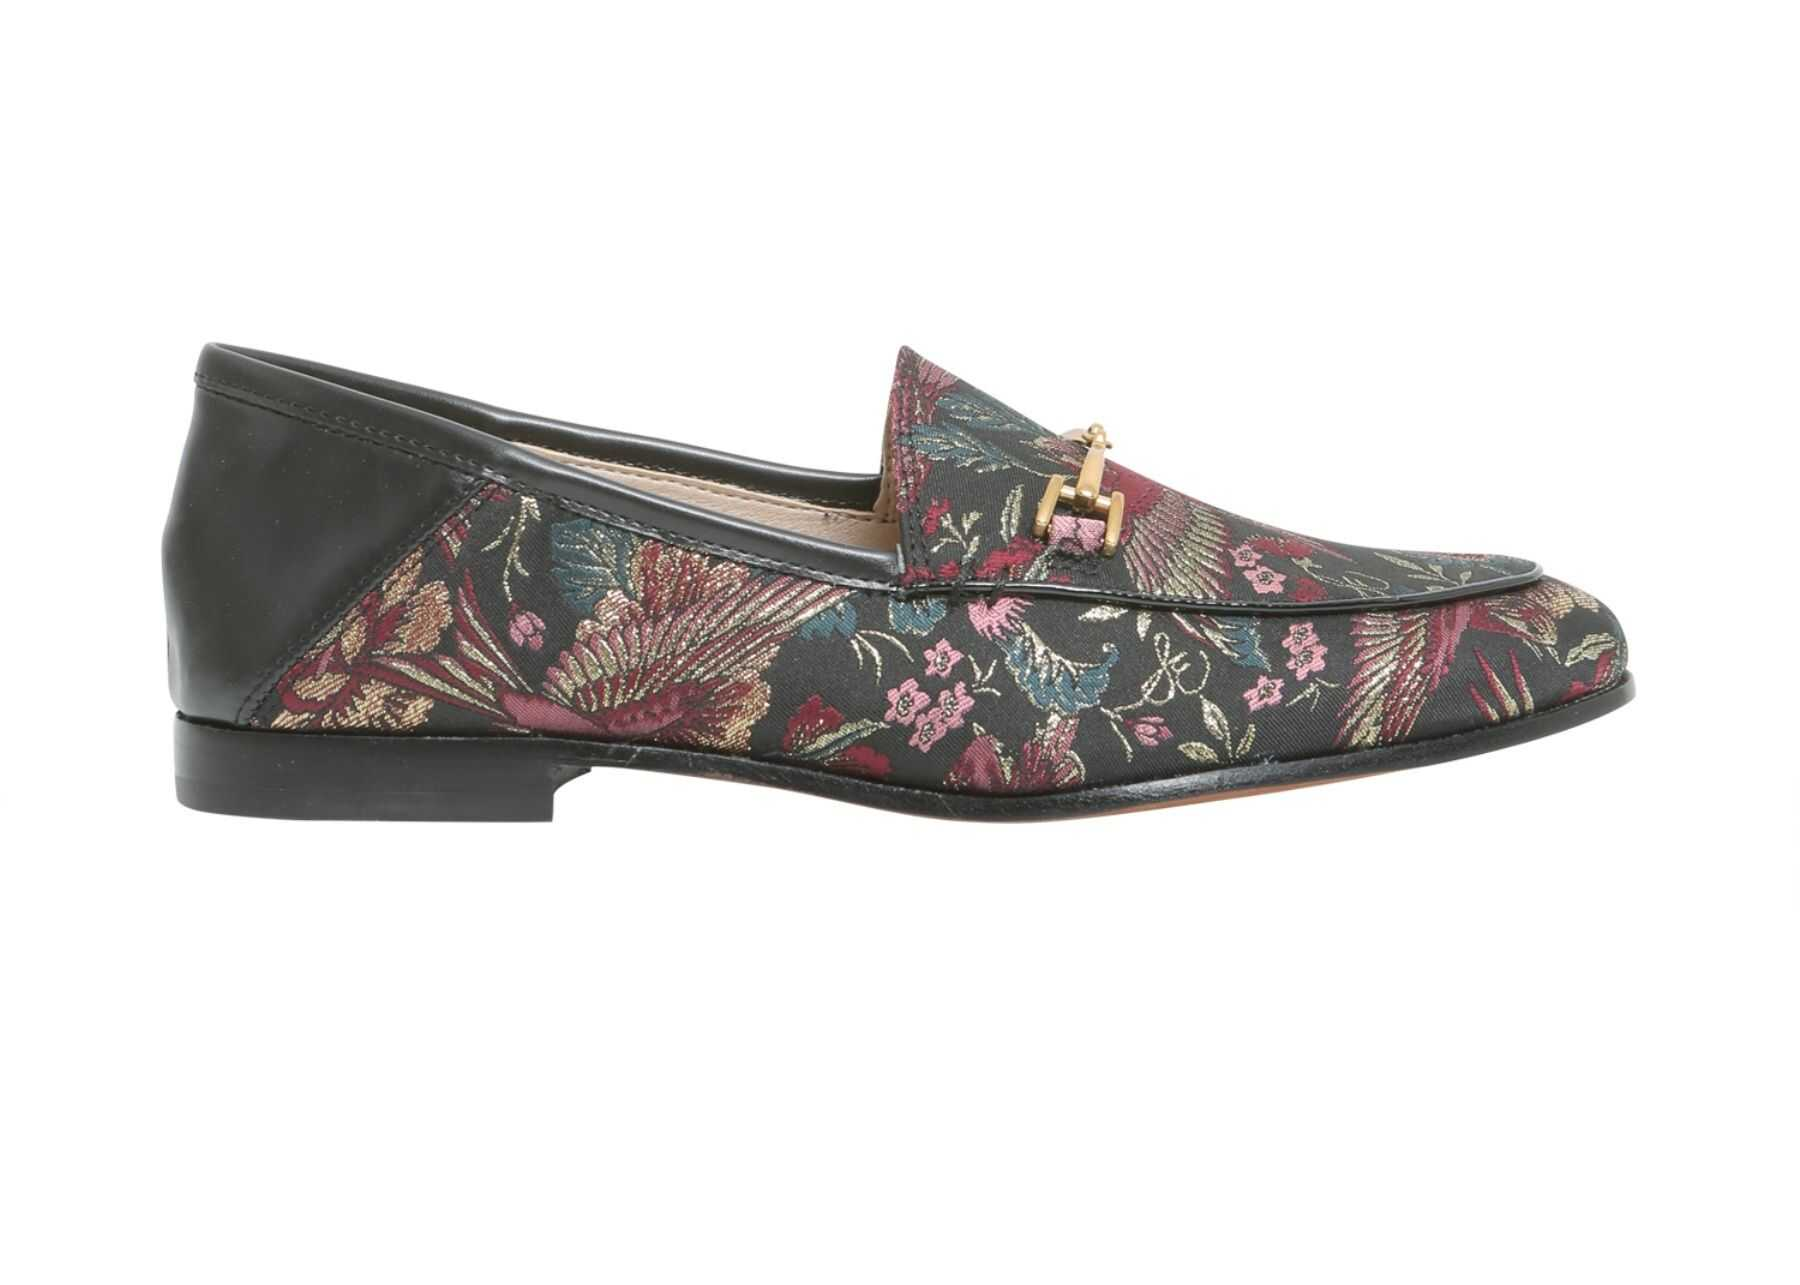 Sam Edelman Loraine Loafers In Jacqurd Fabric BLACK